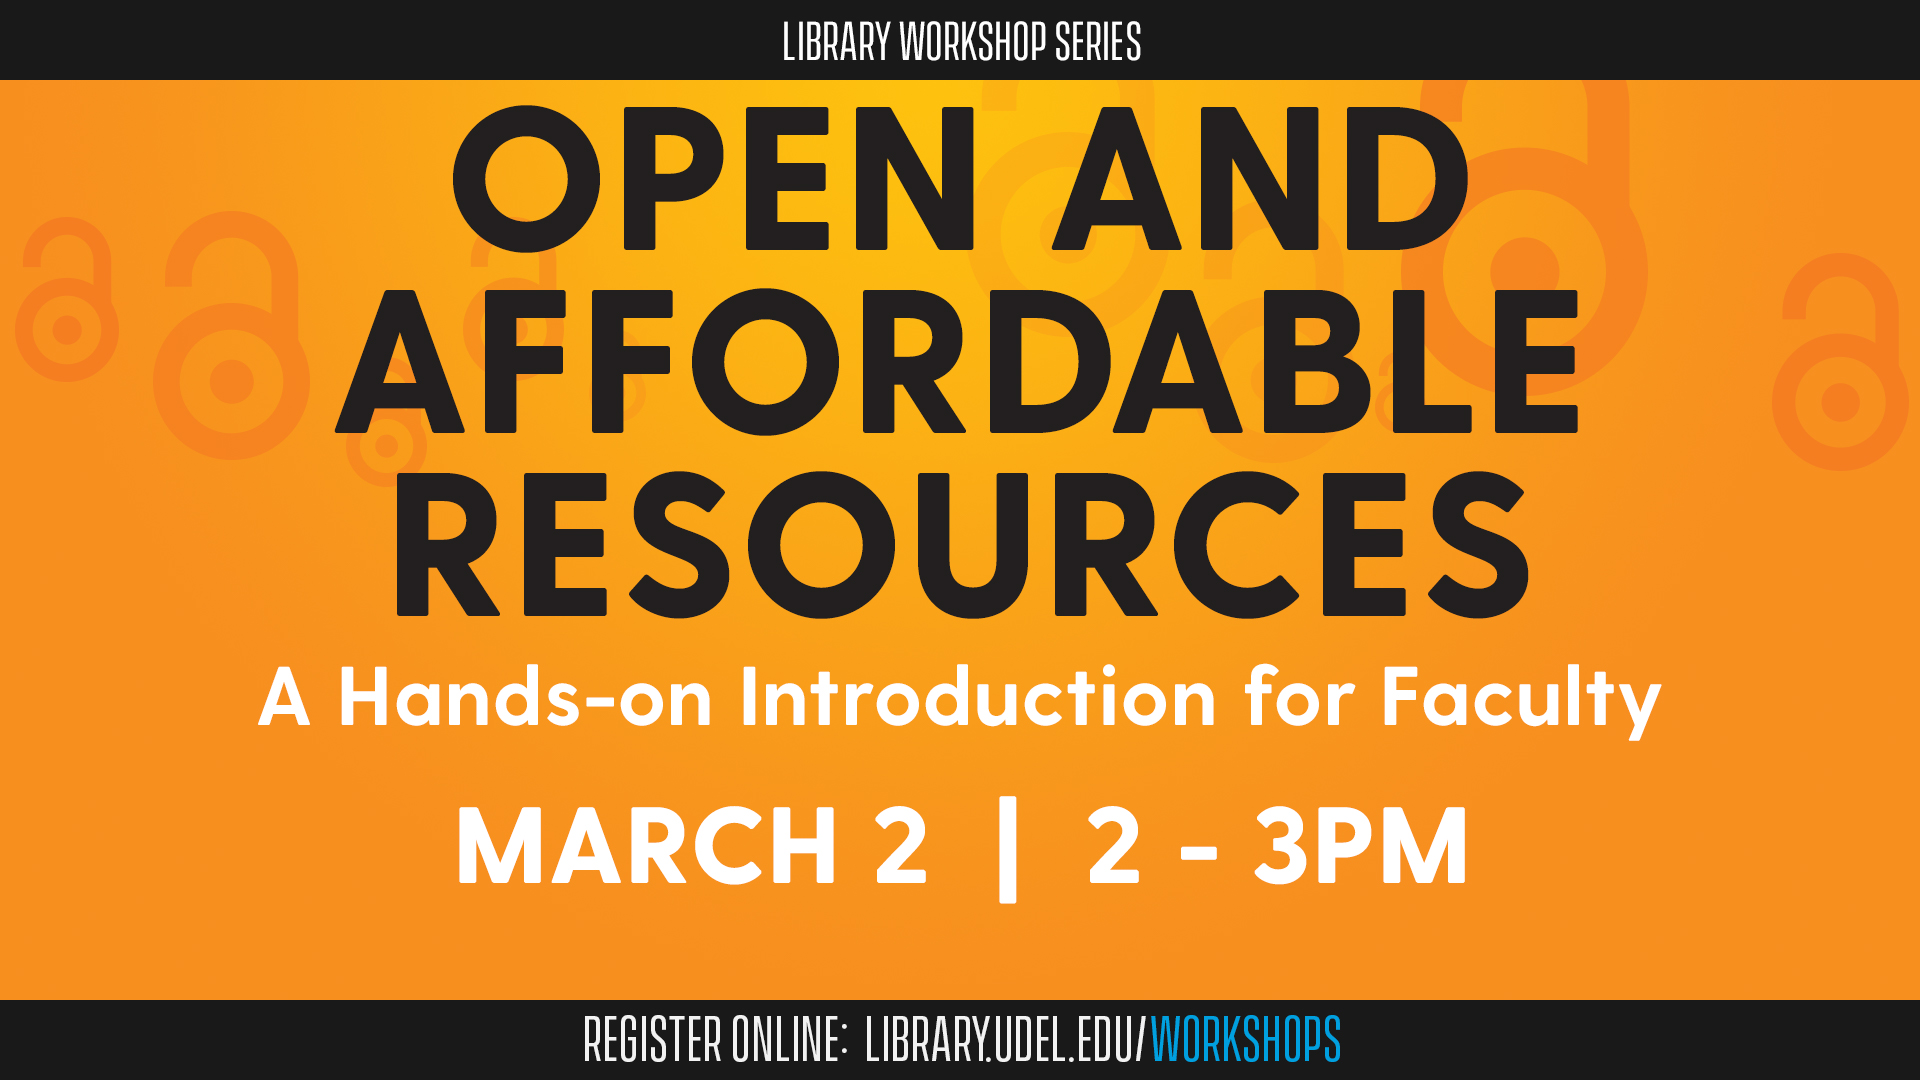 Open and Affordable Resources: A Hands-on Introduction for Faculty